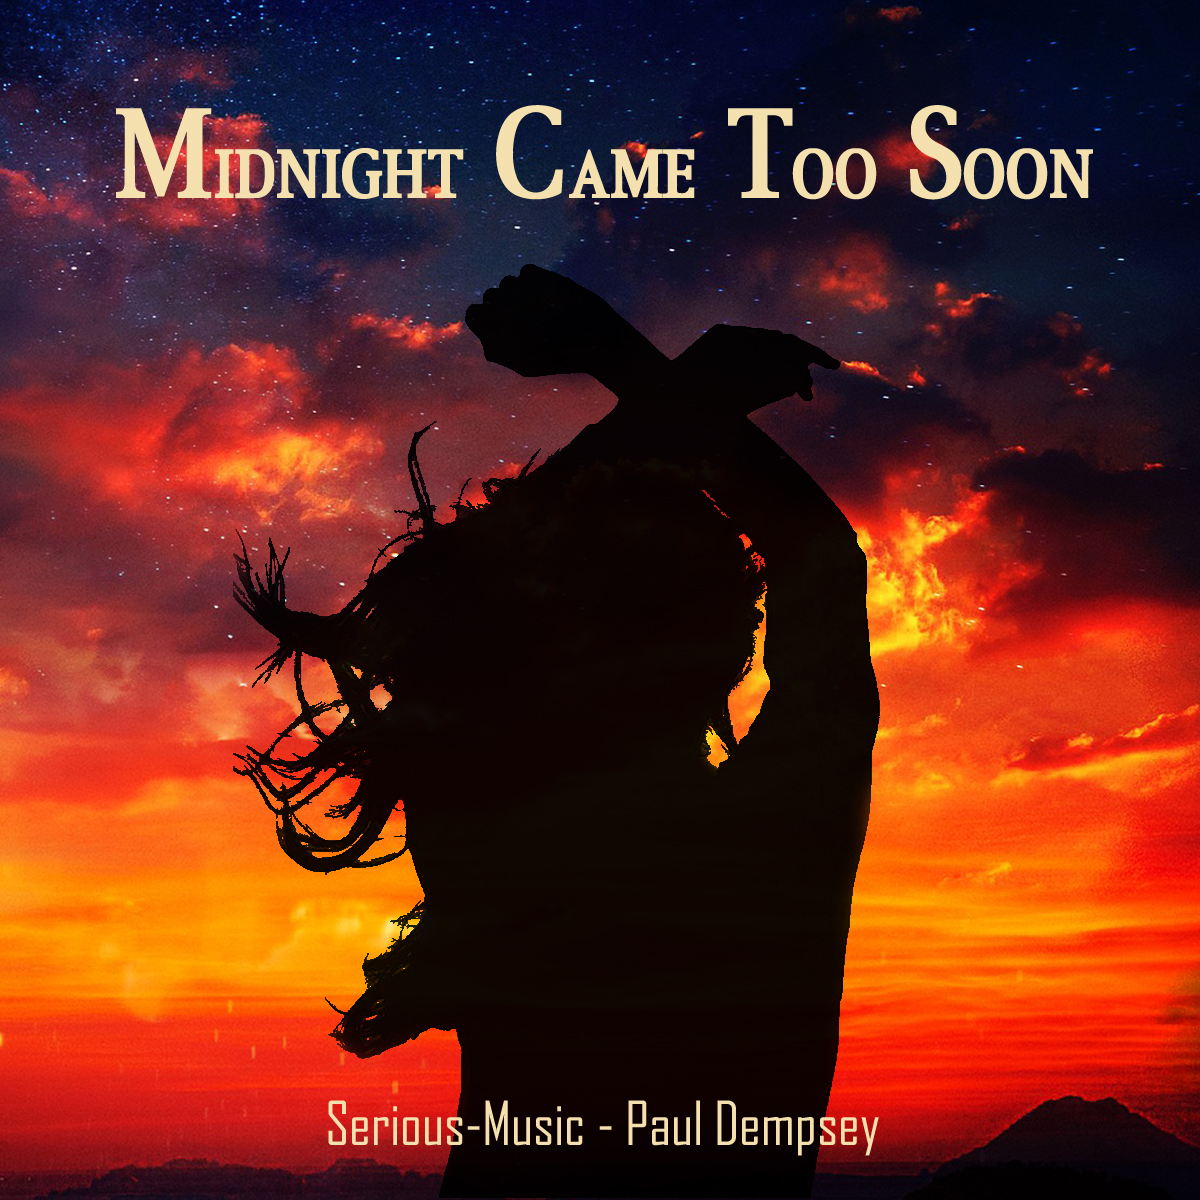 Midnight Came Too Soon feat. Paul Dempsey